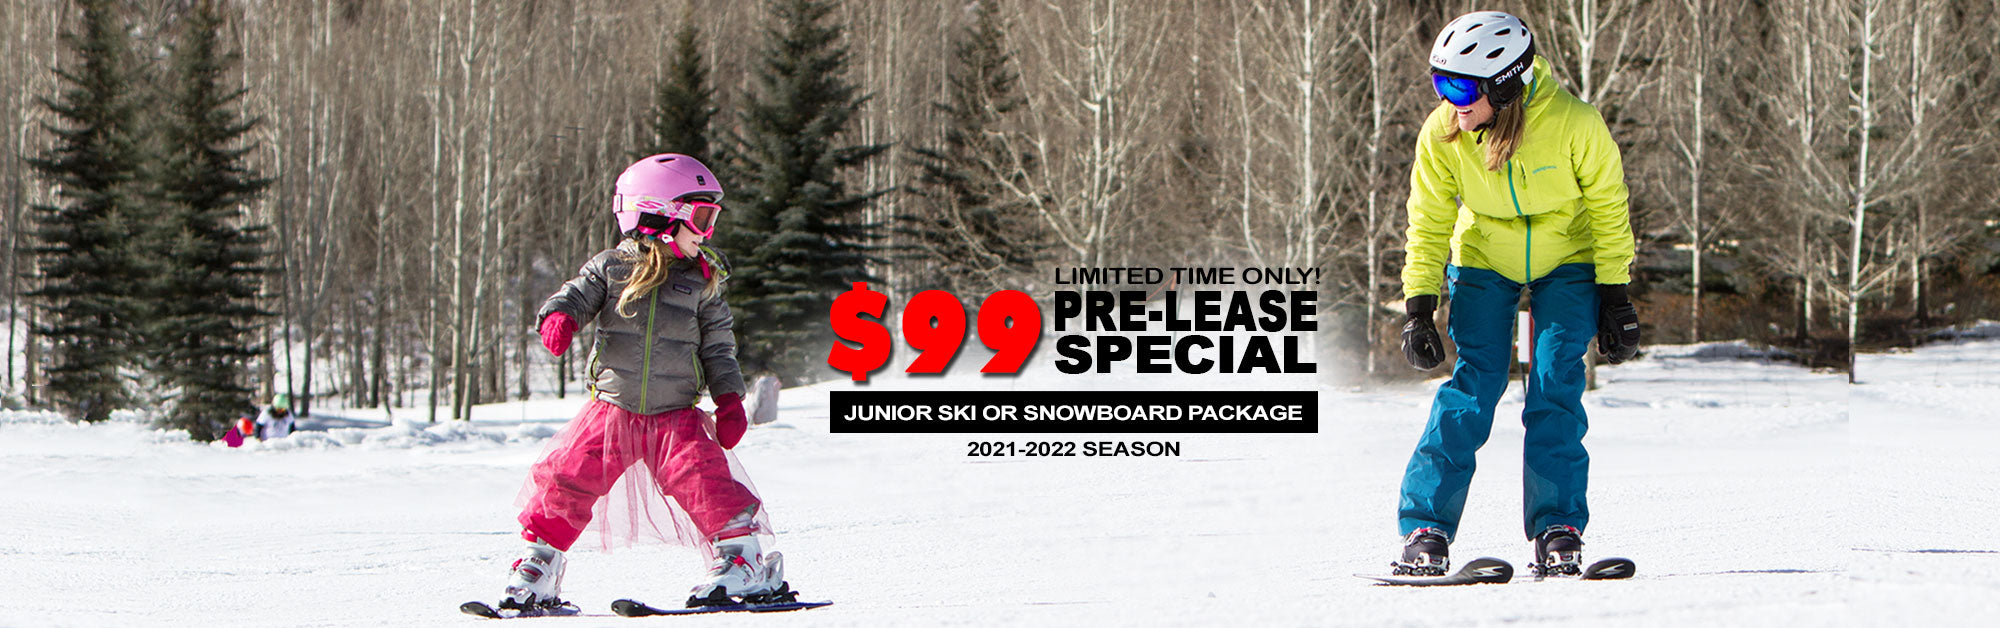 Pre-Lease junior ski or snowboard package at $99 only